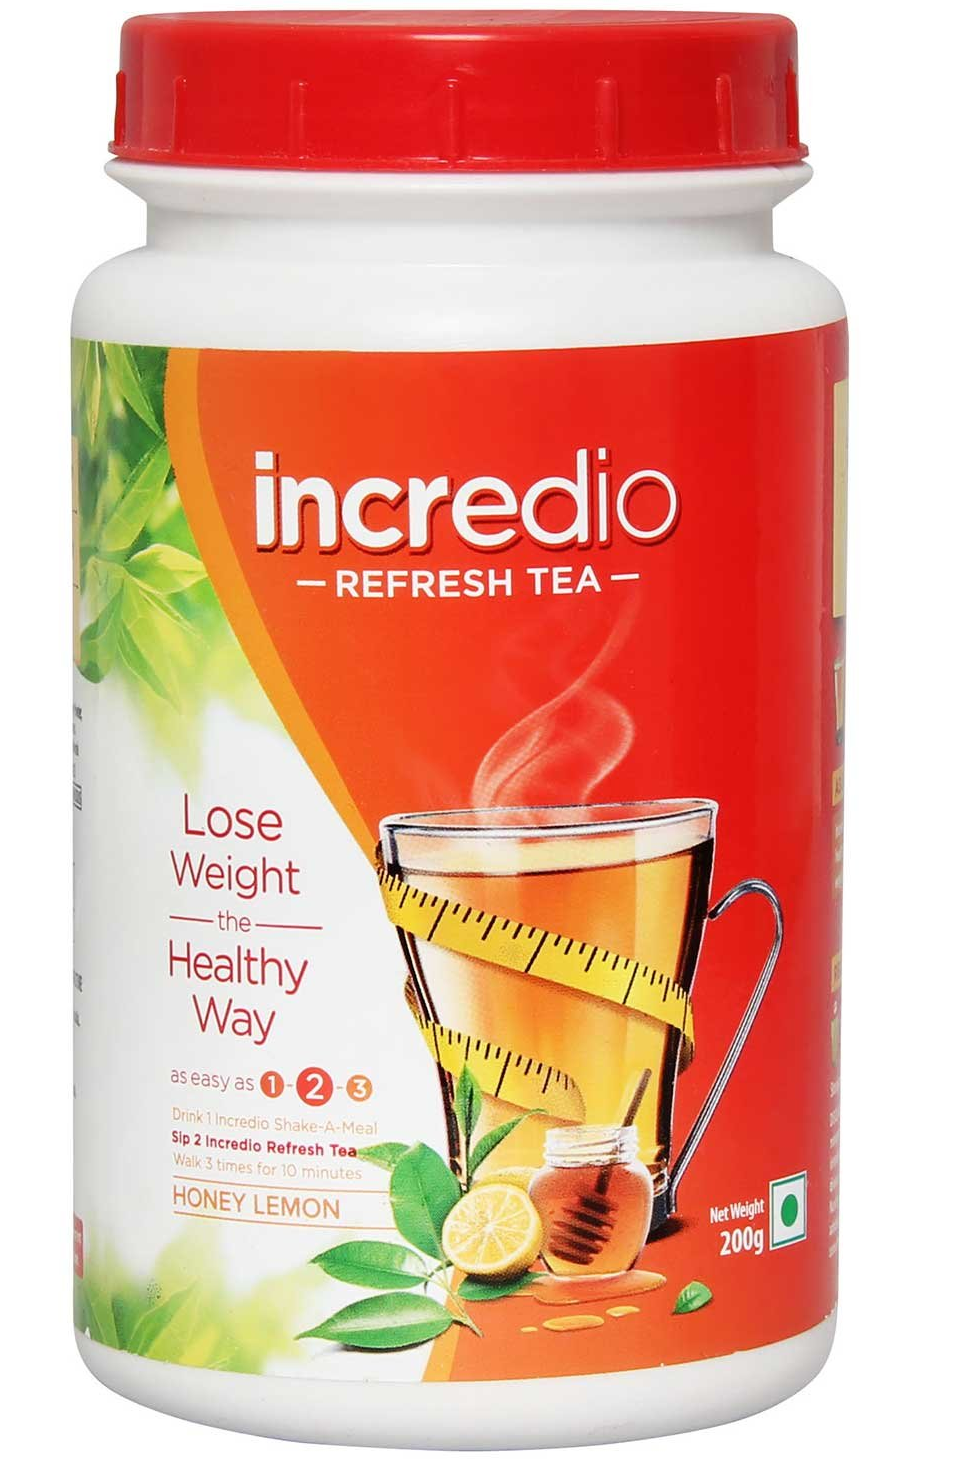 Incredio Refresh Tea Honey Lemon